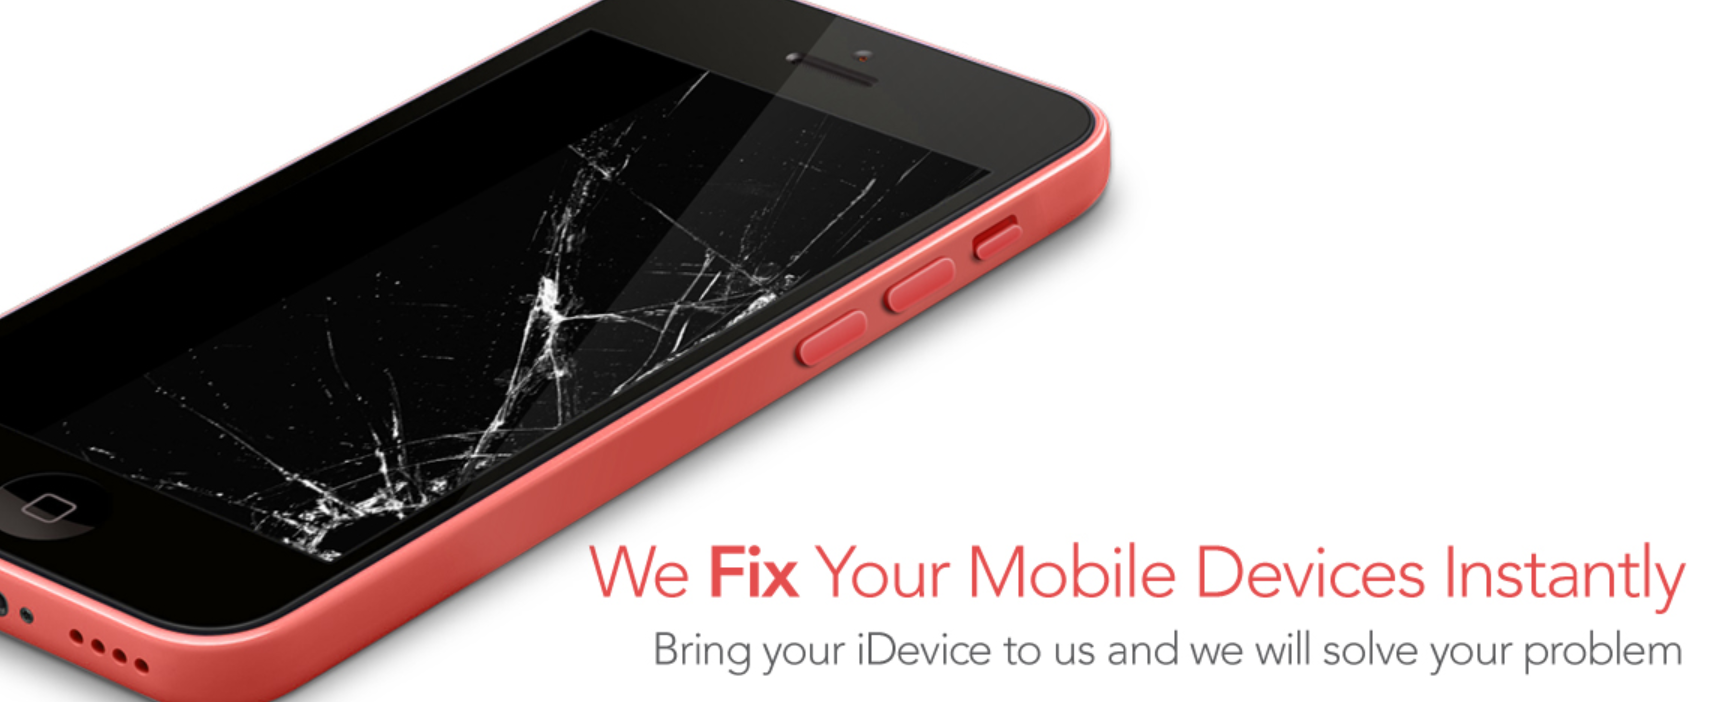 i2Fix.com Setapak Repair iPhone Handphones